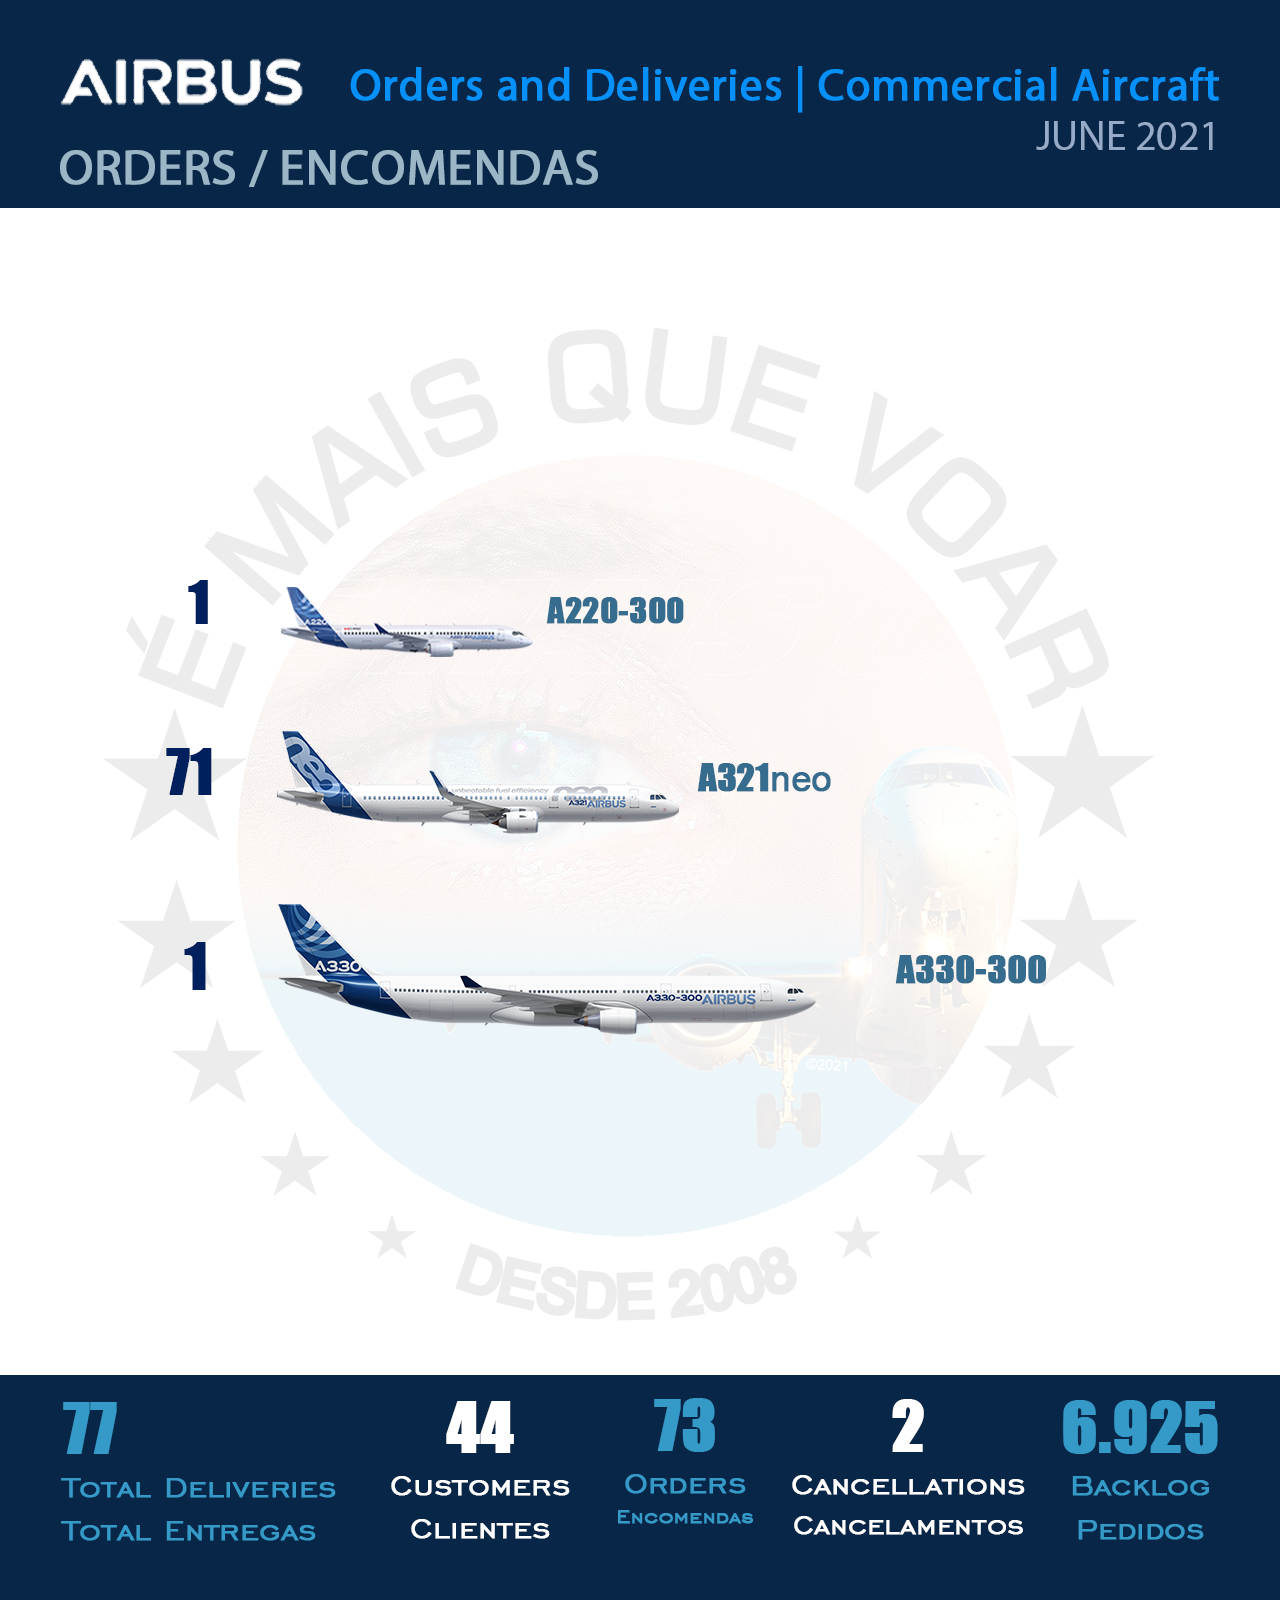 INFOGRAPHIC: Orders and Deliveries Airbus Commercial Aircraft – June 2021